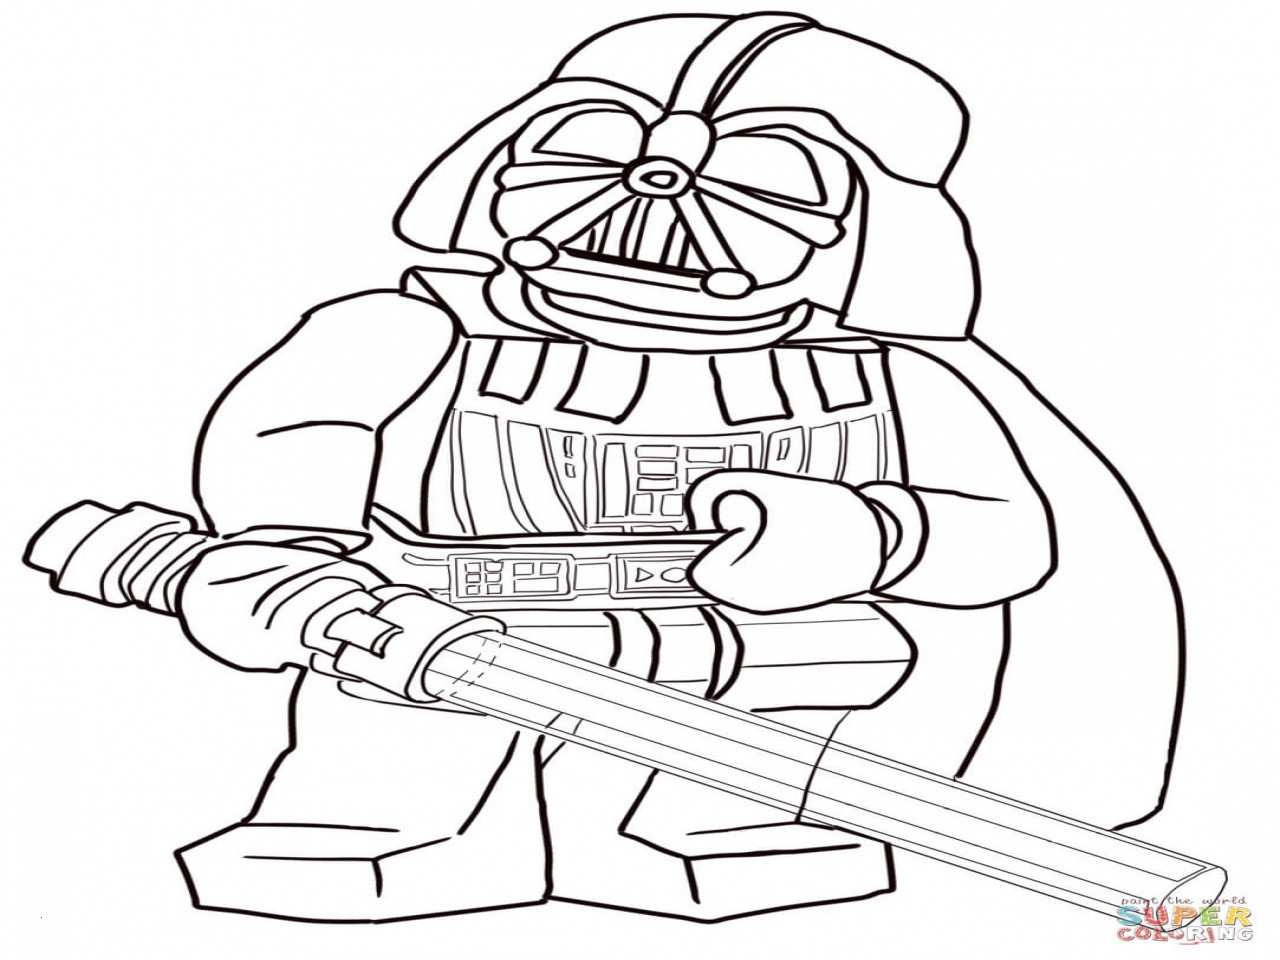 Star Wars Ausmalbilder Darth Maul Genial Darth Vader Coloring Pages New 32 Star Wars Ausmalbilder Darth Stock